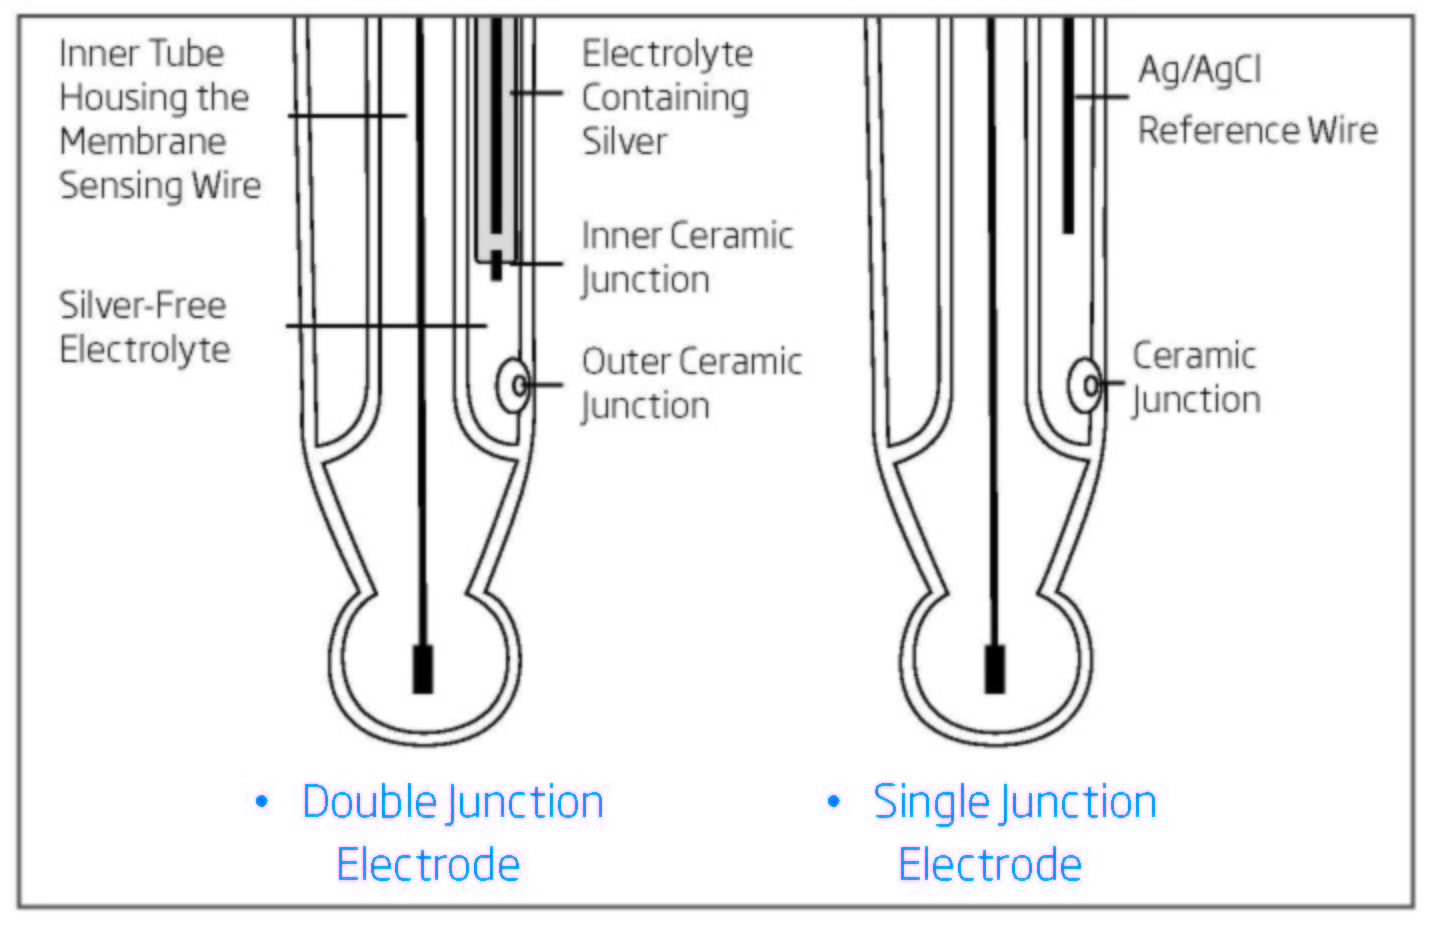 Diagram: Single junction compared with double junction pH electrode